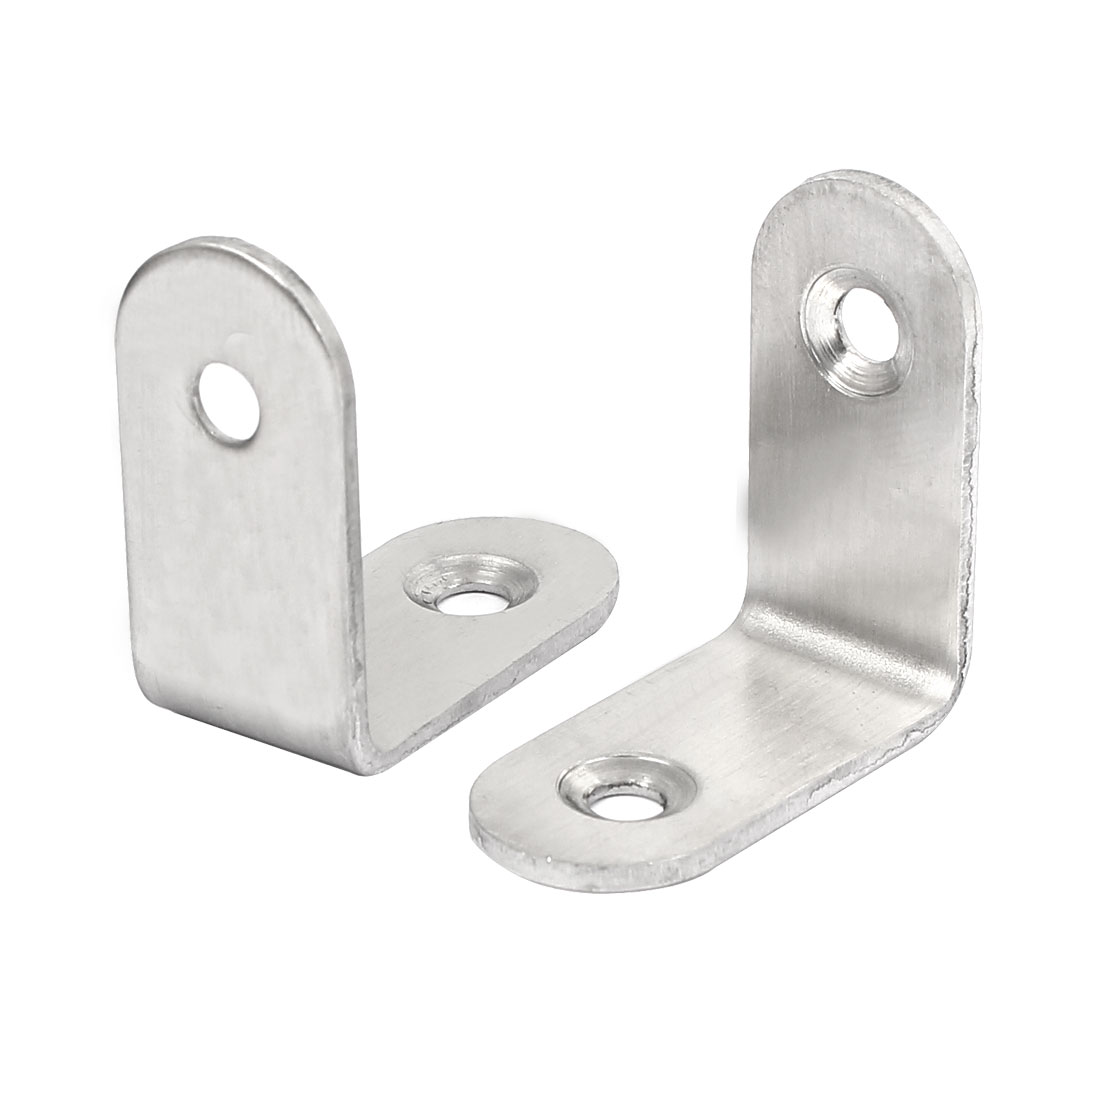 30mmx30mmx3mm L Shape Shelf Bracket Support Angle Brace 2pcs